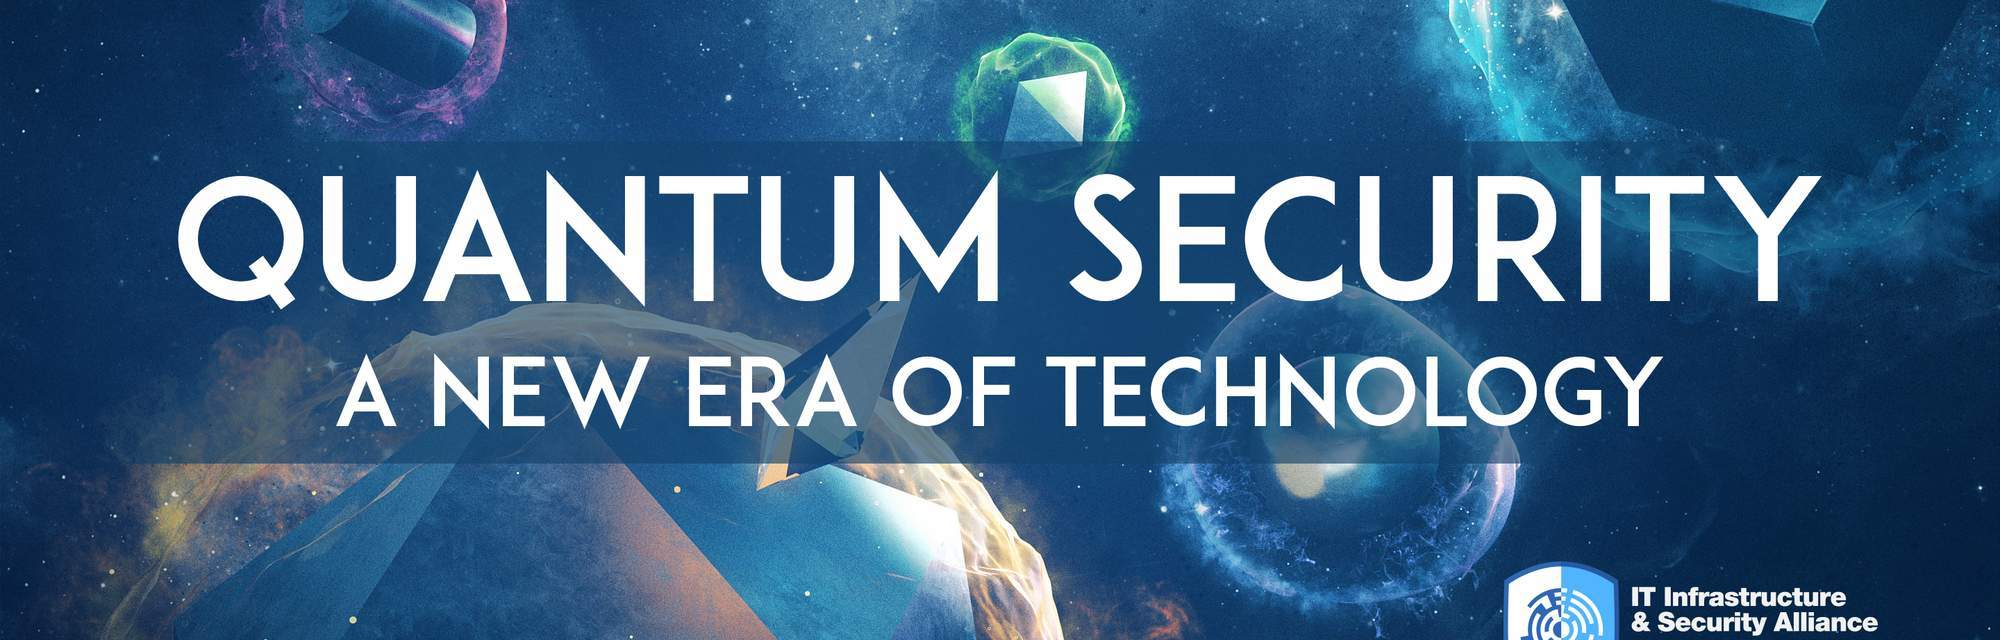 Quantum security event banner